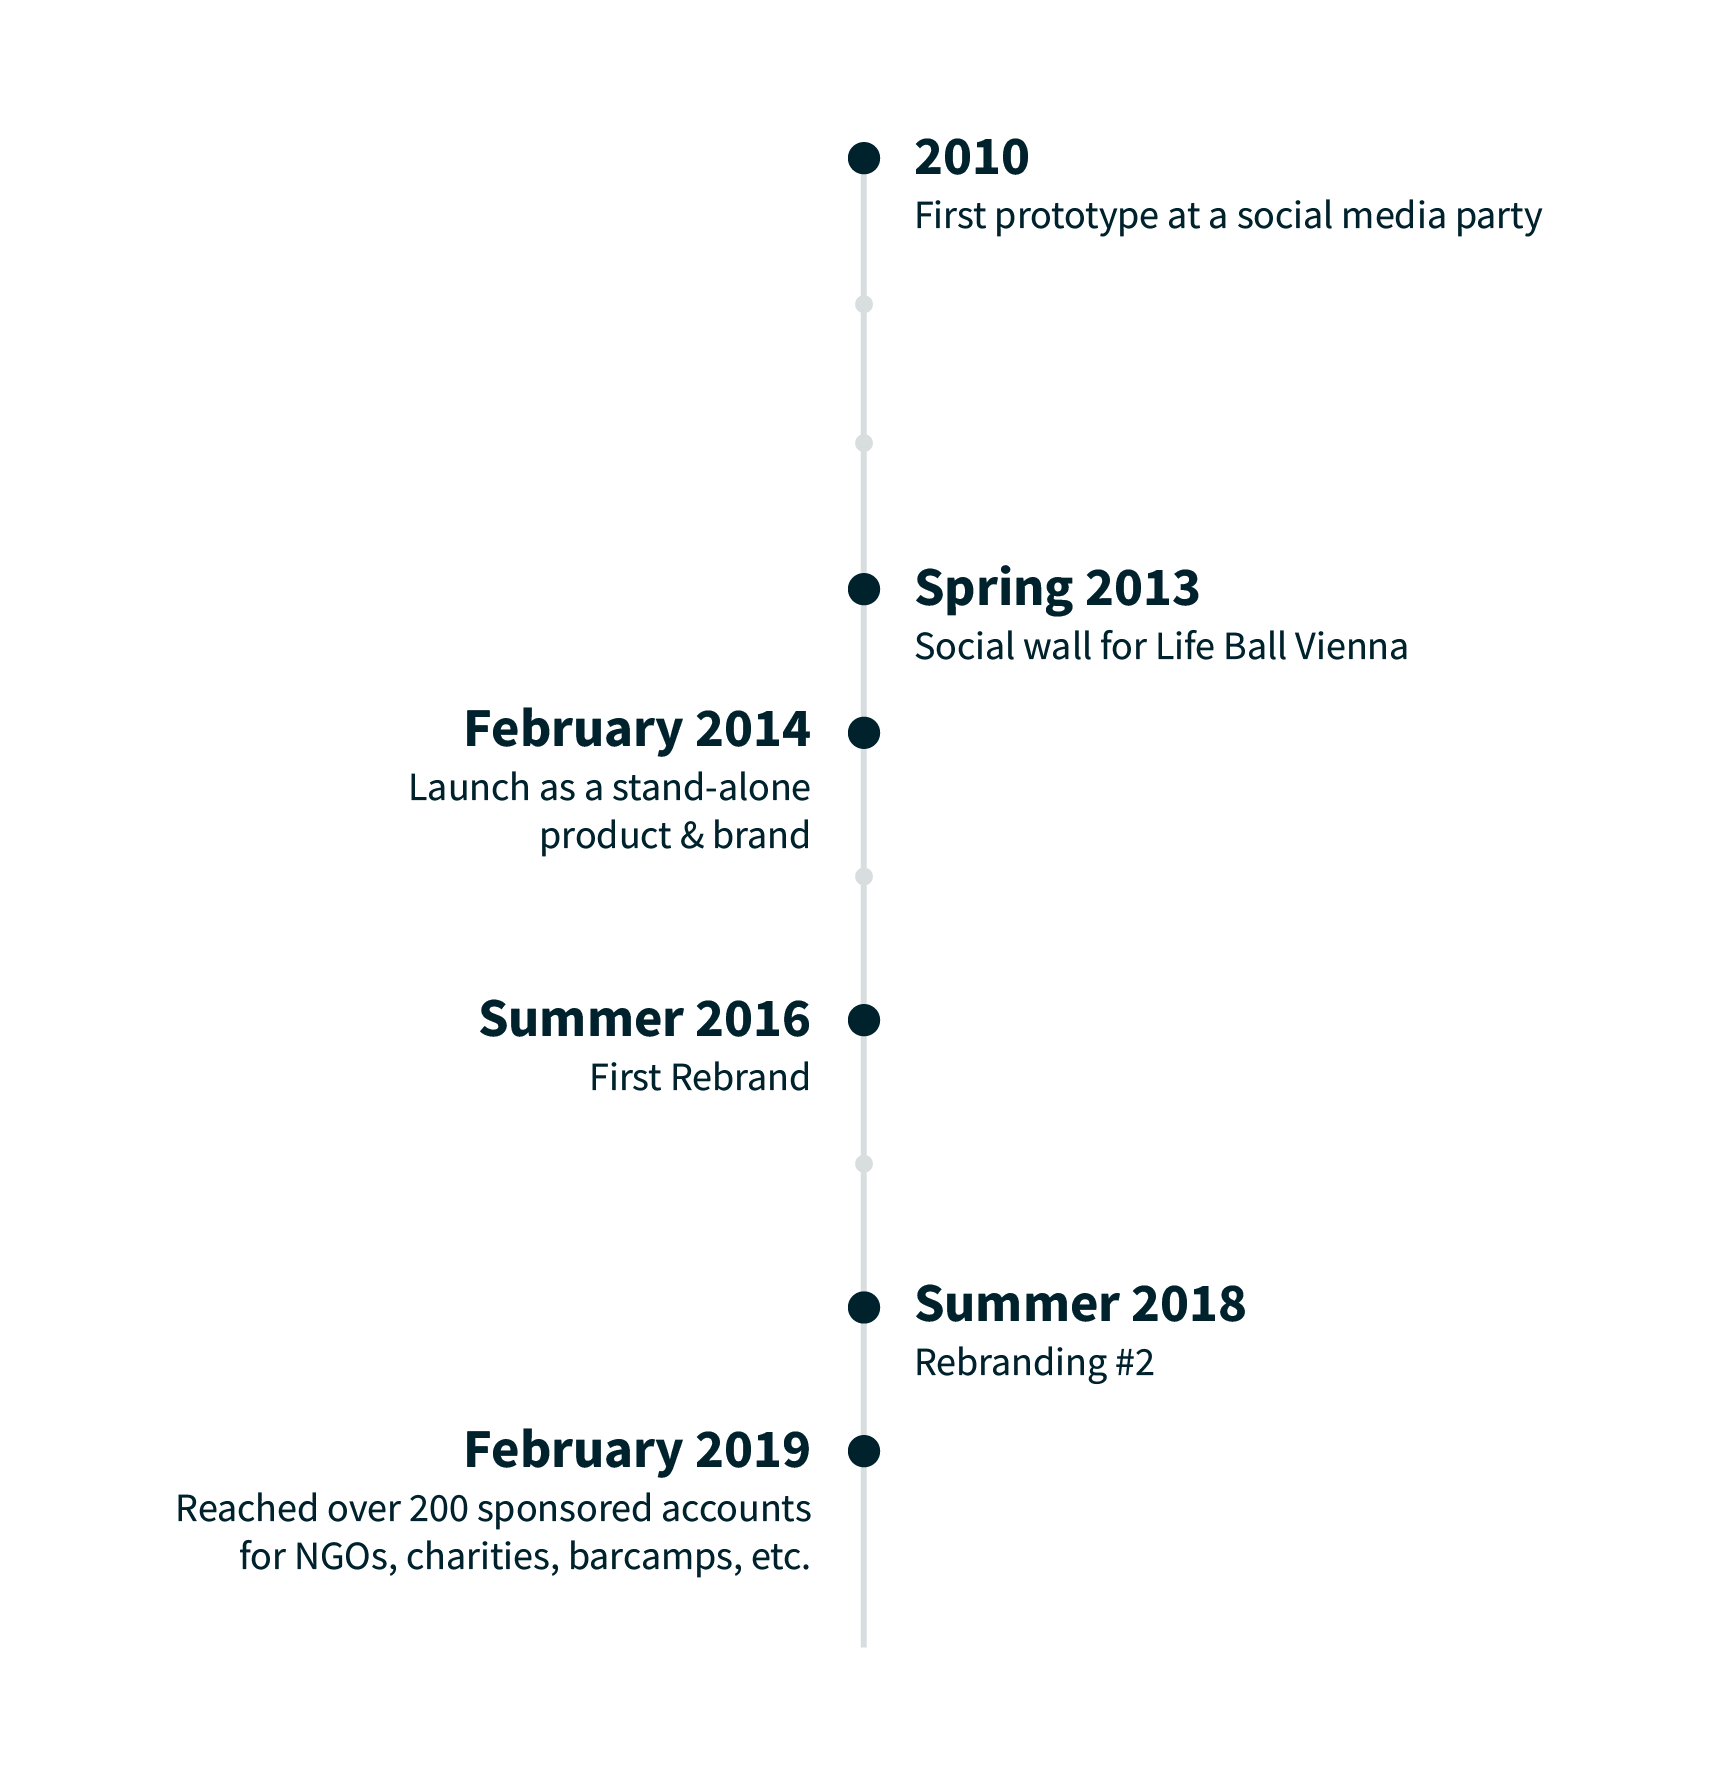 Chart of Walls.io milestones: 2010 First prototype at a social media party, Spring 2013 Social wall for Life Ball Vienna, February 2014 Launch as a stand-alone product & brand, Summer 2016 First Rebrand, Summer 2018 Rebranding #2, February 2019 Reached over 200 sponsored accounts for NGOs, charities, barcamps, etc.